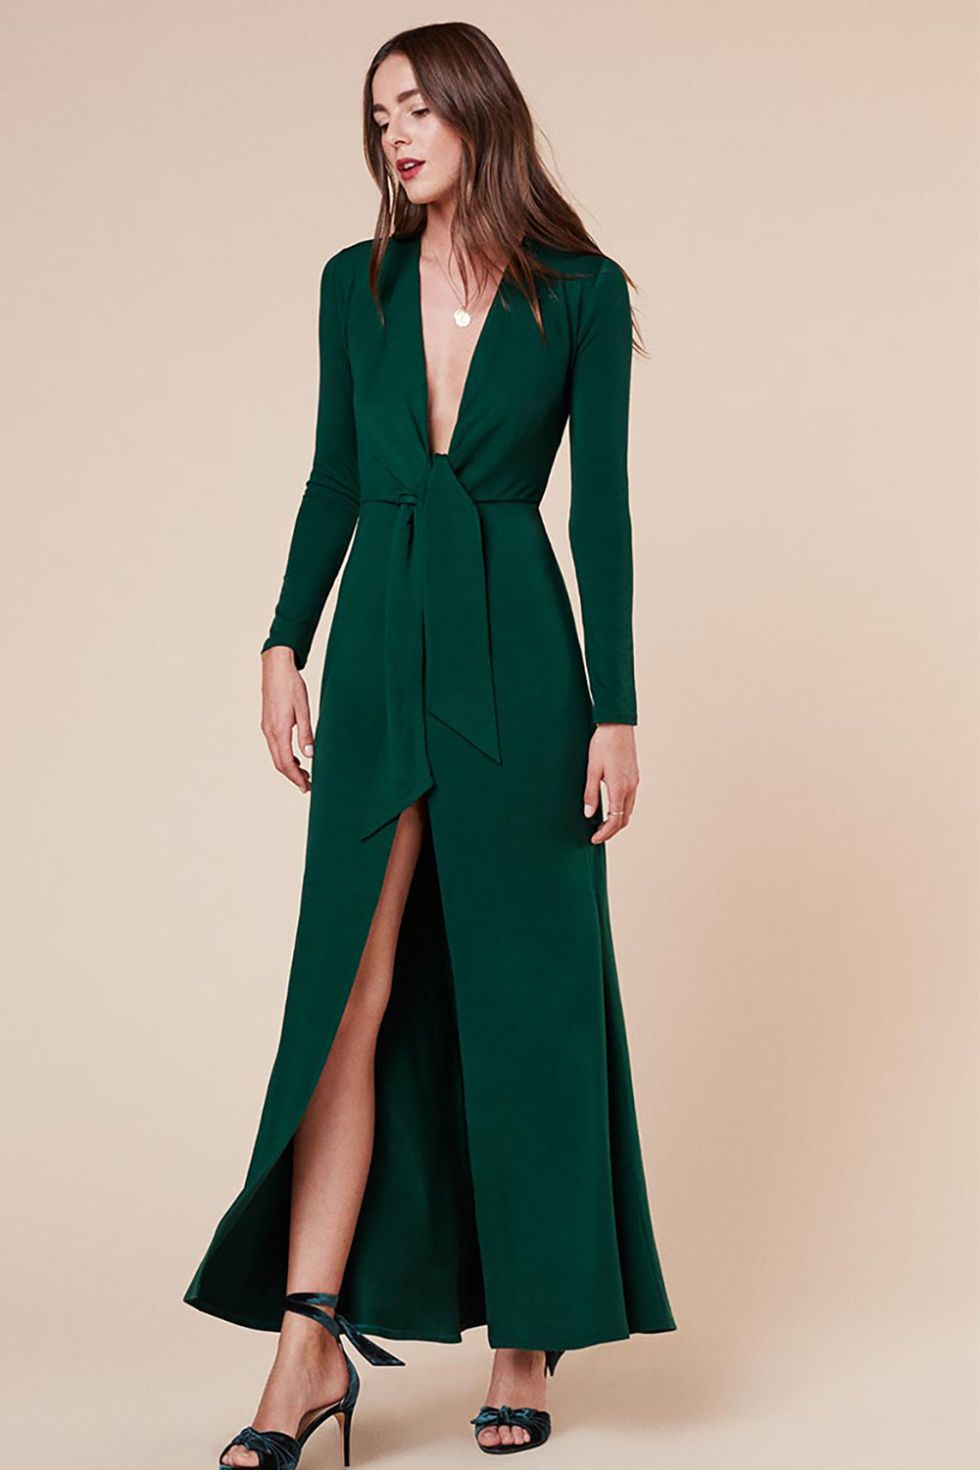 12 Chic And Warm Dresses To Wear A Winter Wedding